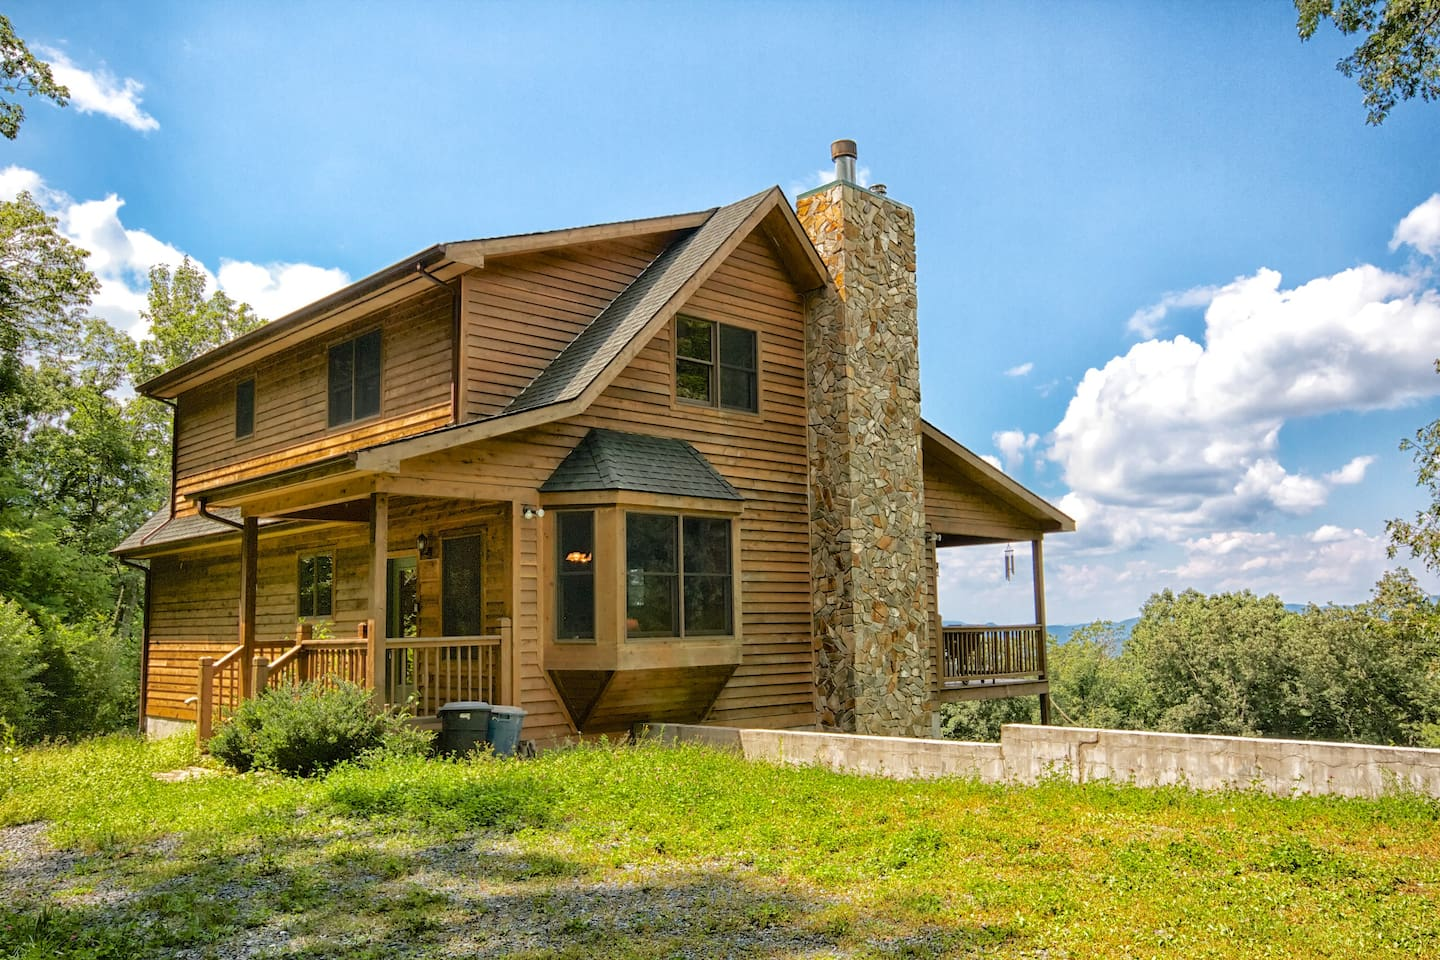 Cabin on acres view linville gorge cabins for rent in for Linville falls cabin rentals